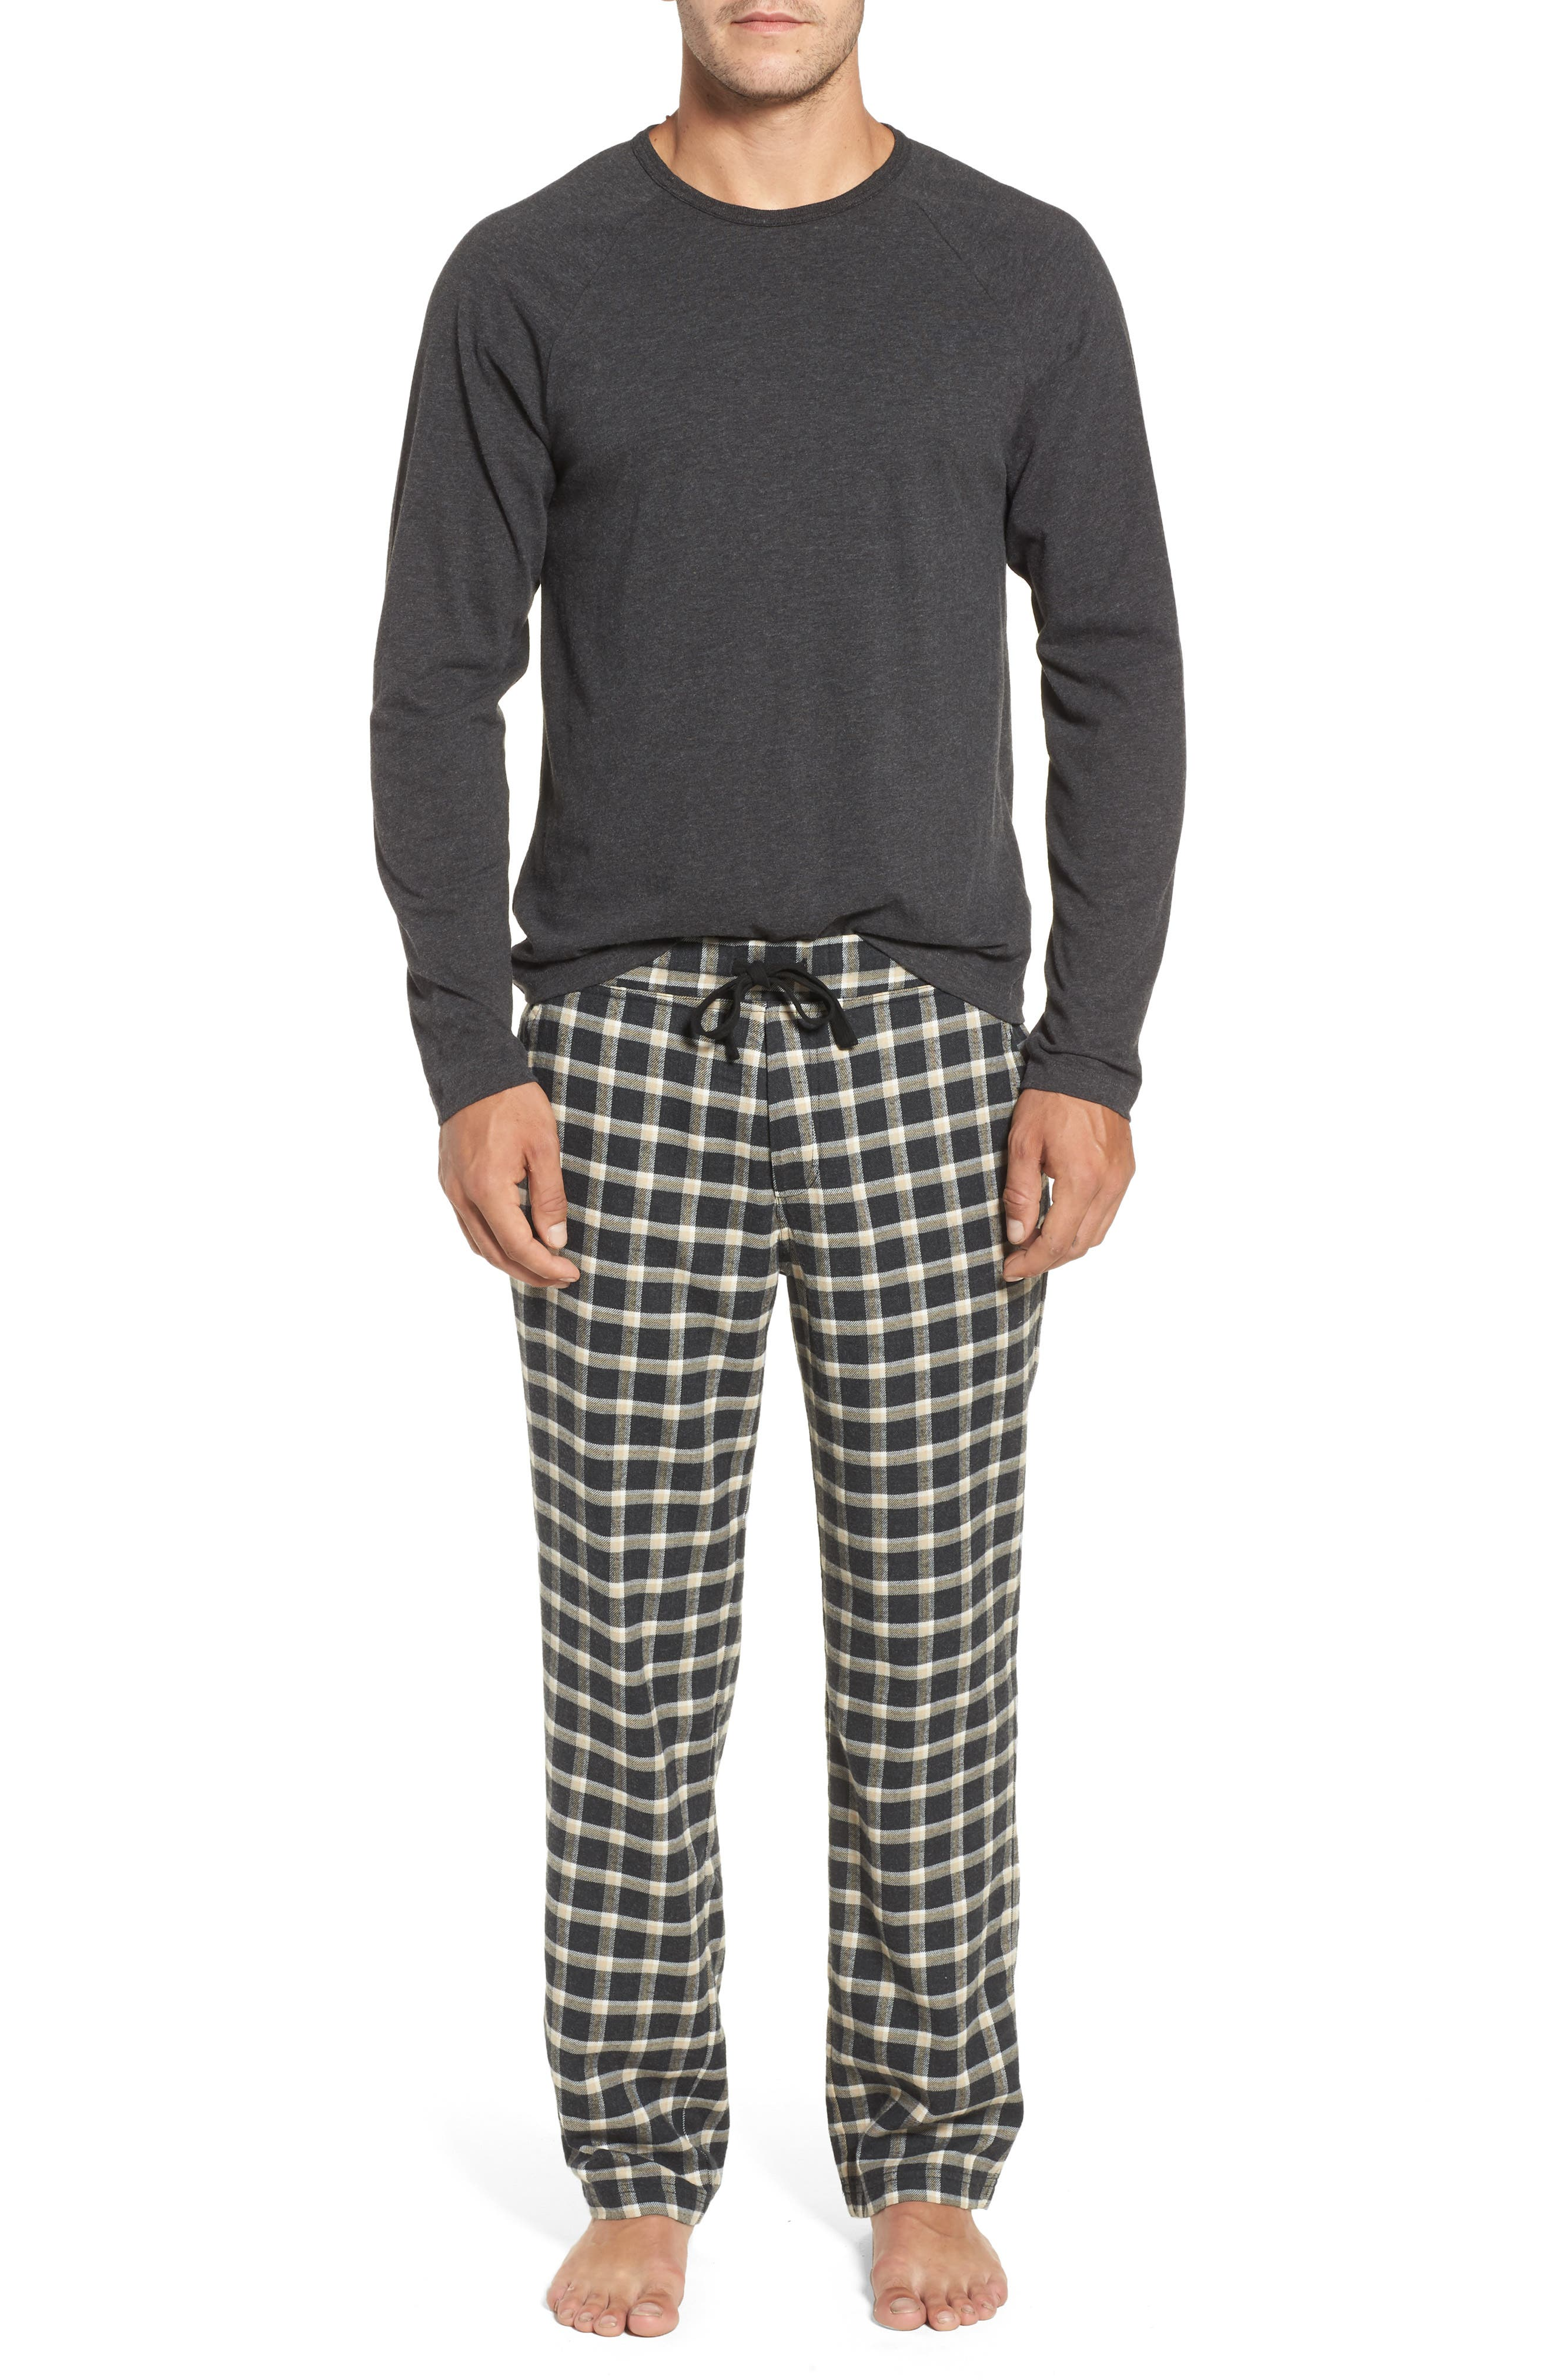 Steiner Pajama Set,                         Main,                         color, Black/ Black Bear Heather